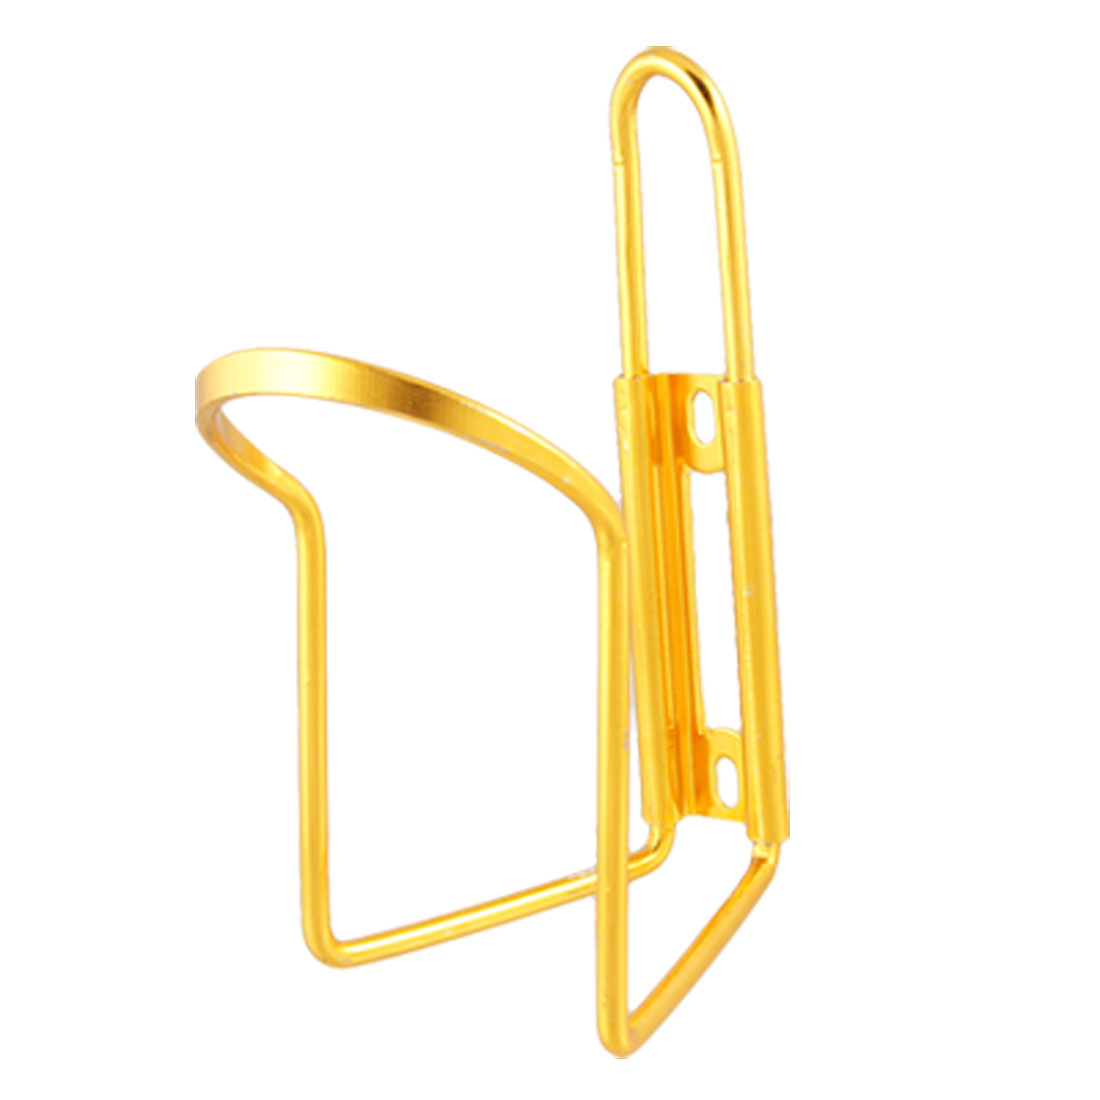 Gold Tone Plated Aluminum Alloy Bracket Bottle Holder for Bike Bicycle